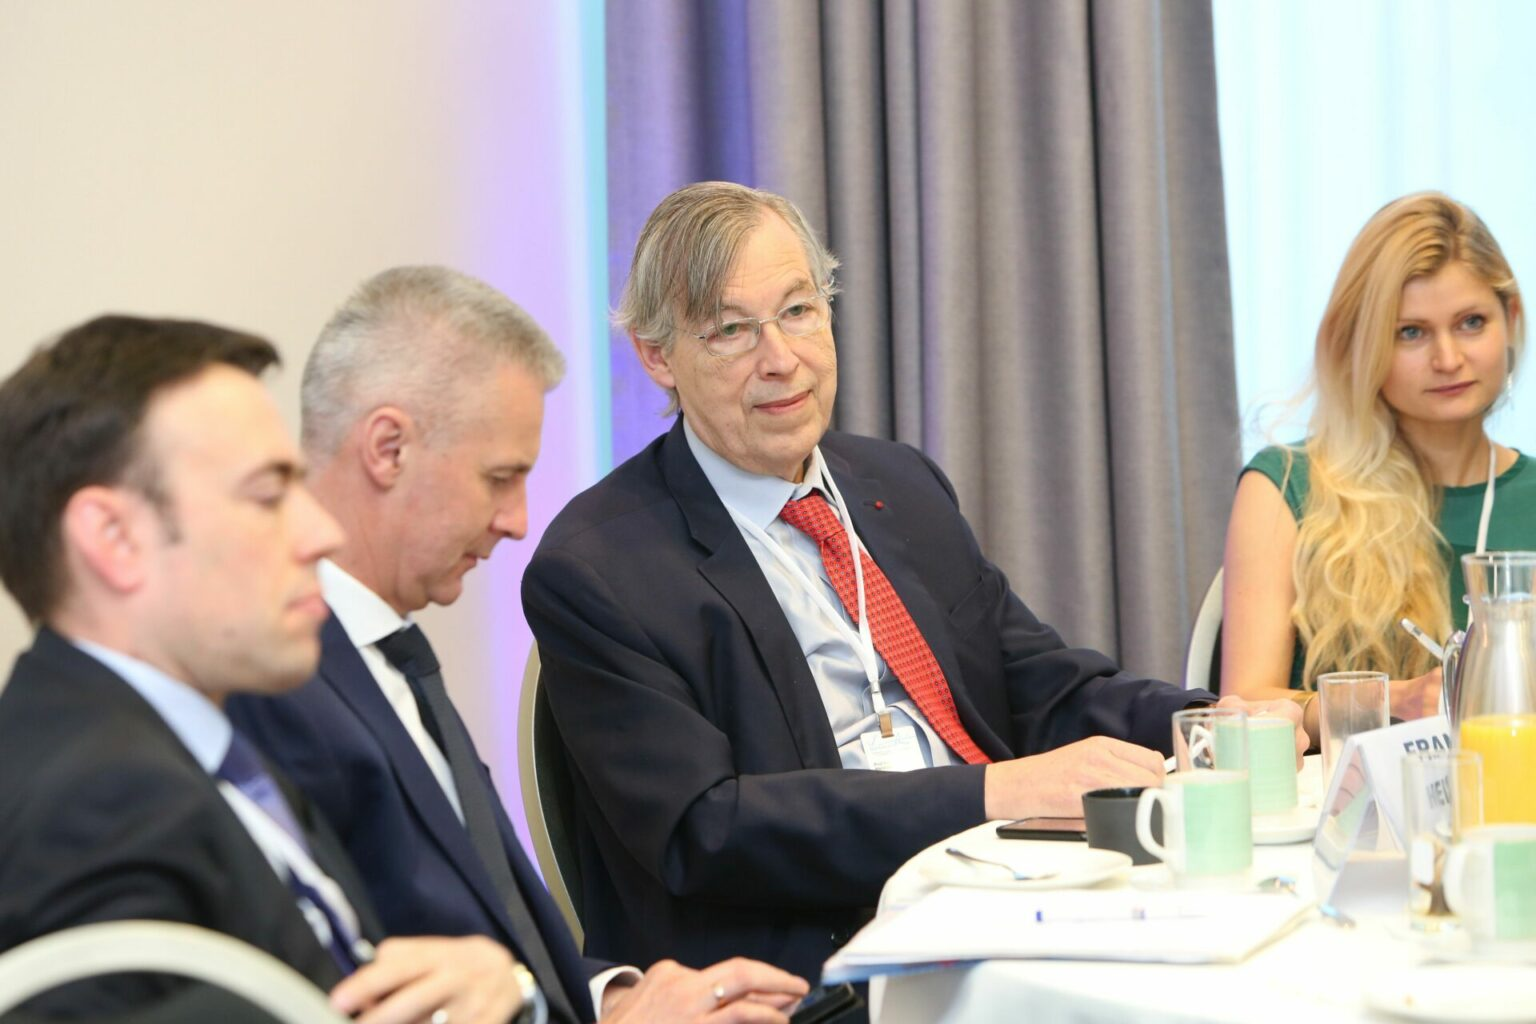 """François Heisbourg participated in a breakfast session entitled """"Unity of Principles: France and Germany in a Changing Europe"""" at LMC 2019."""